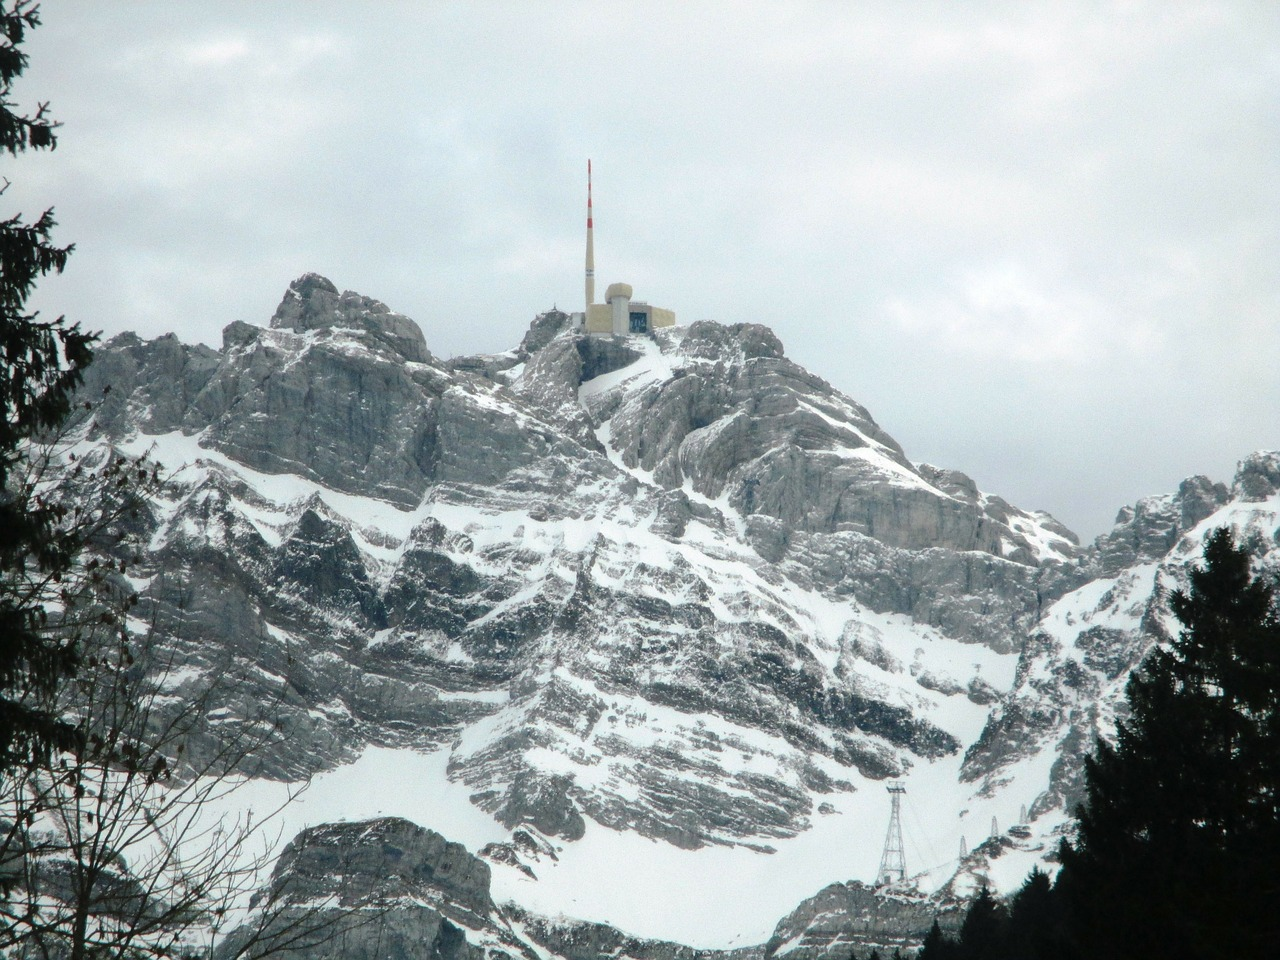 säntis,switzerland,switzerland säntis,cell towers,winter,mountains,swiss alps,snow,rock,more,free pictures, free photos, free images, royalty free, free illustrations, public domain